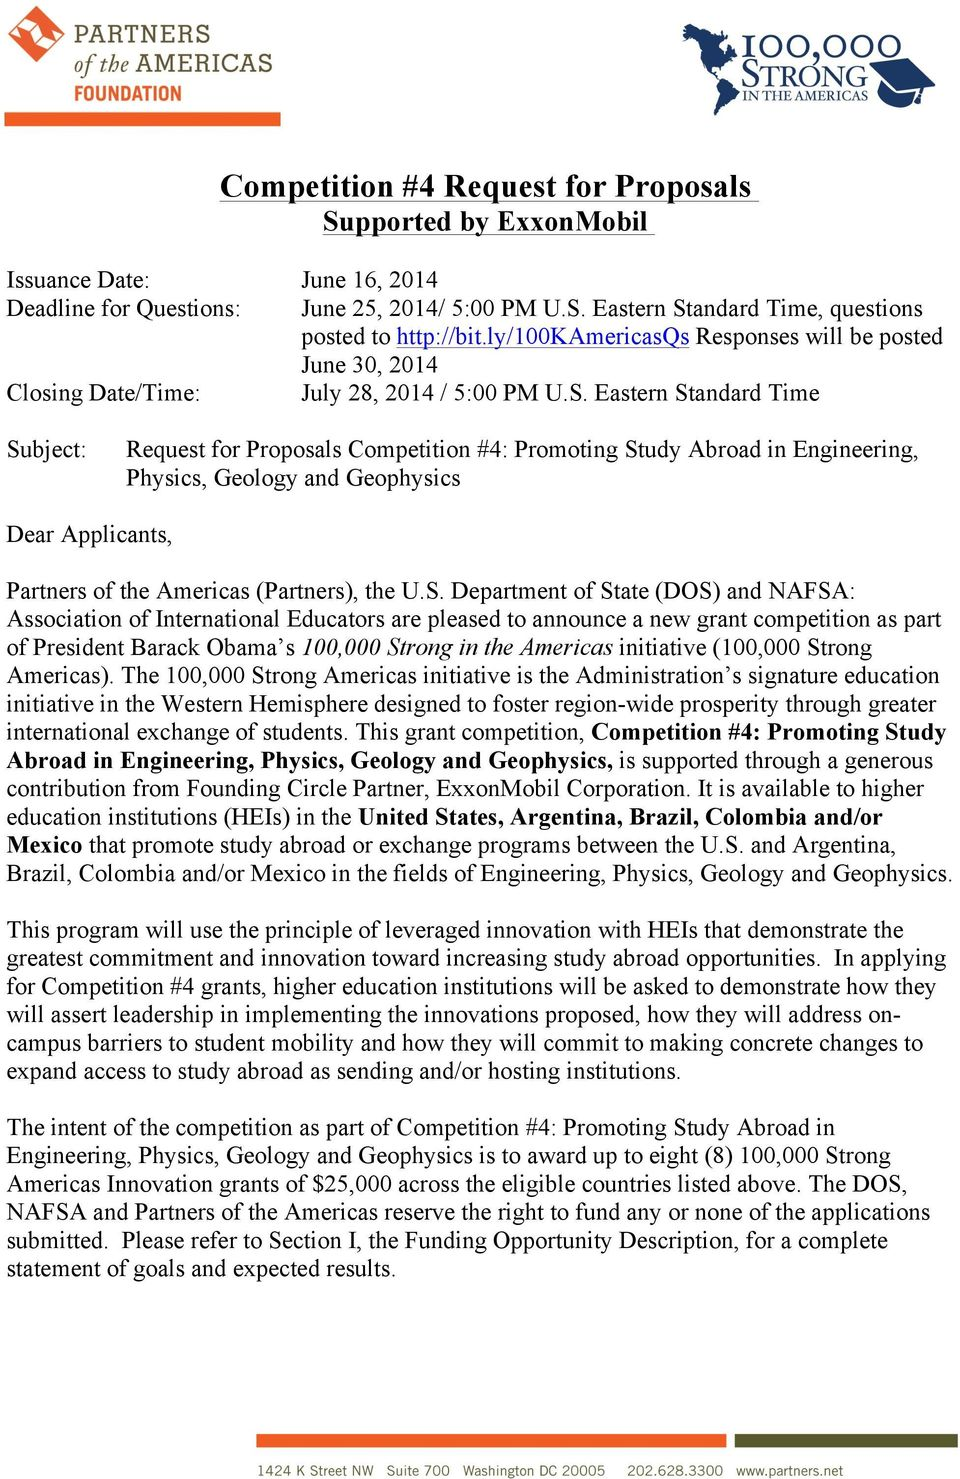 Eastern Standard Time Subject: Request for Proposals Competition #4: Promoting Study Abroad in Engineering, Physics, Geology and Geophysics Dear Applicants, Partners of the Americas (Partners), the U.